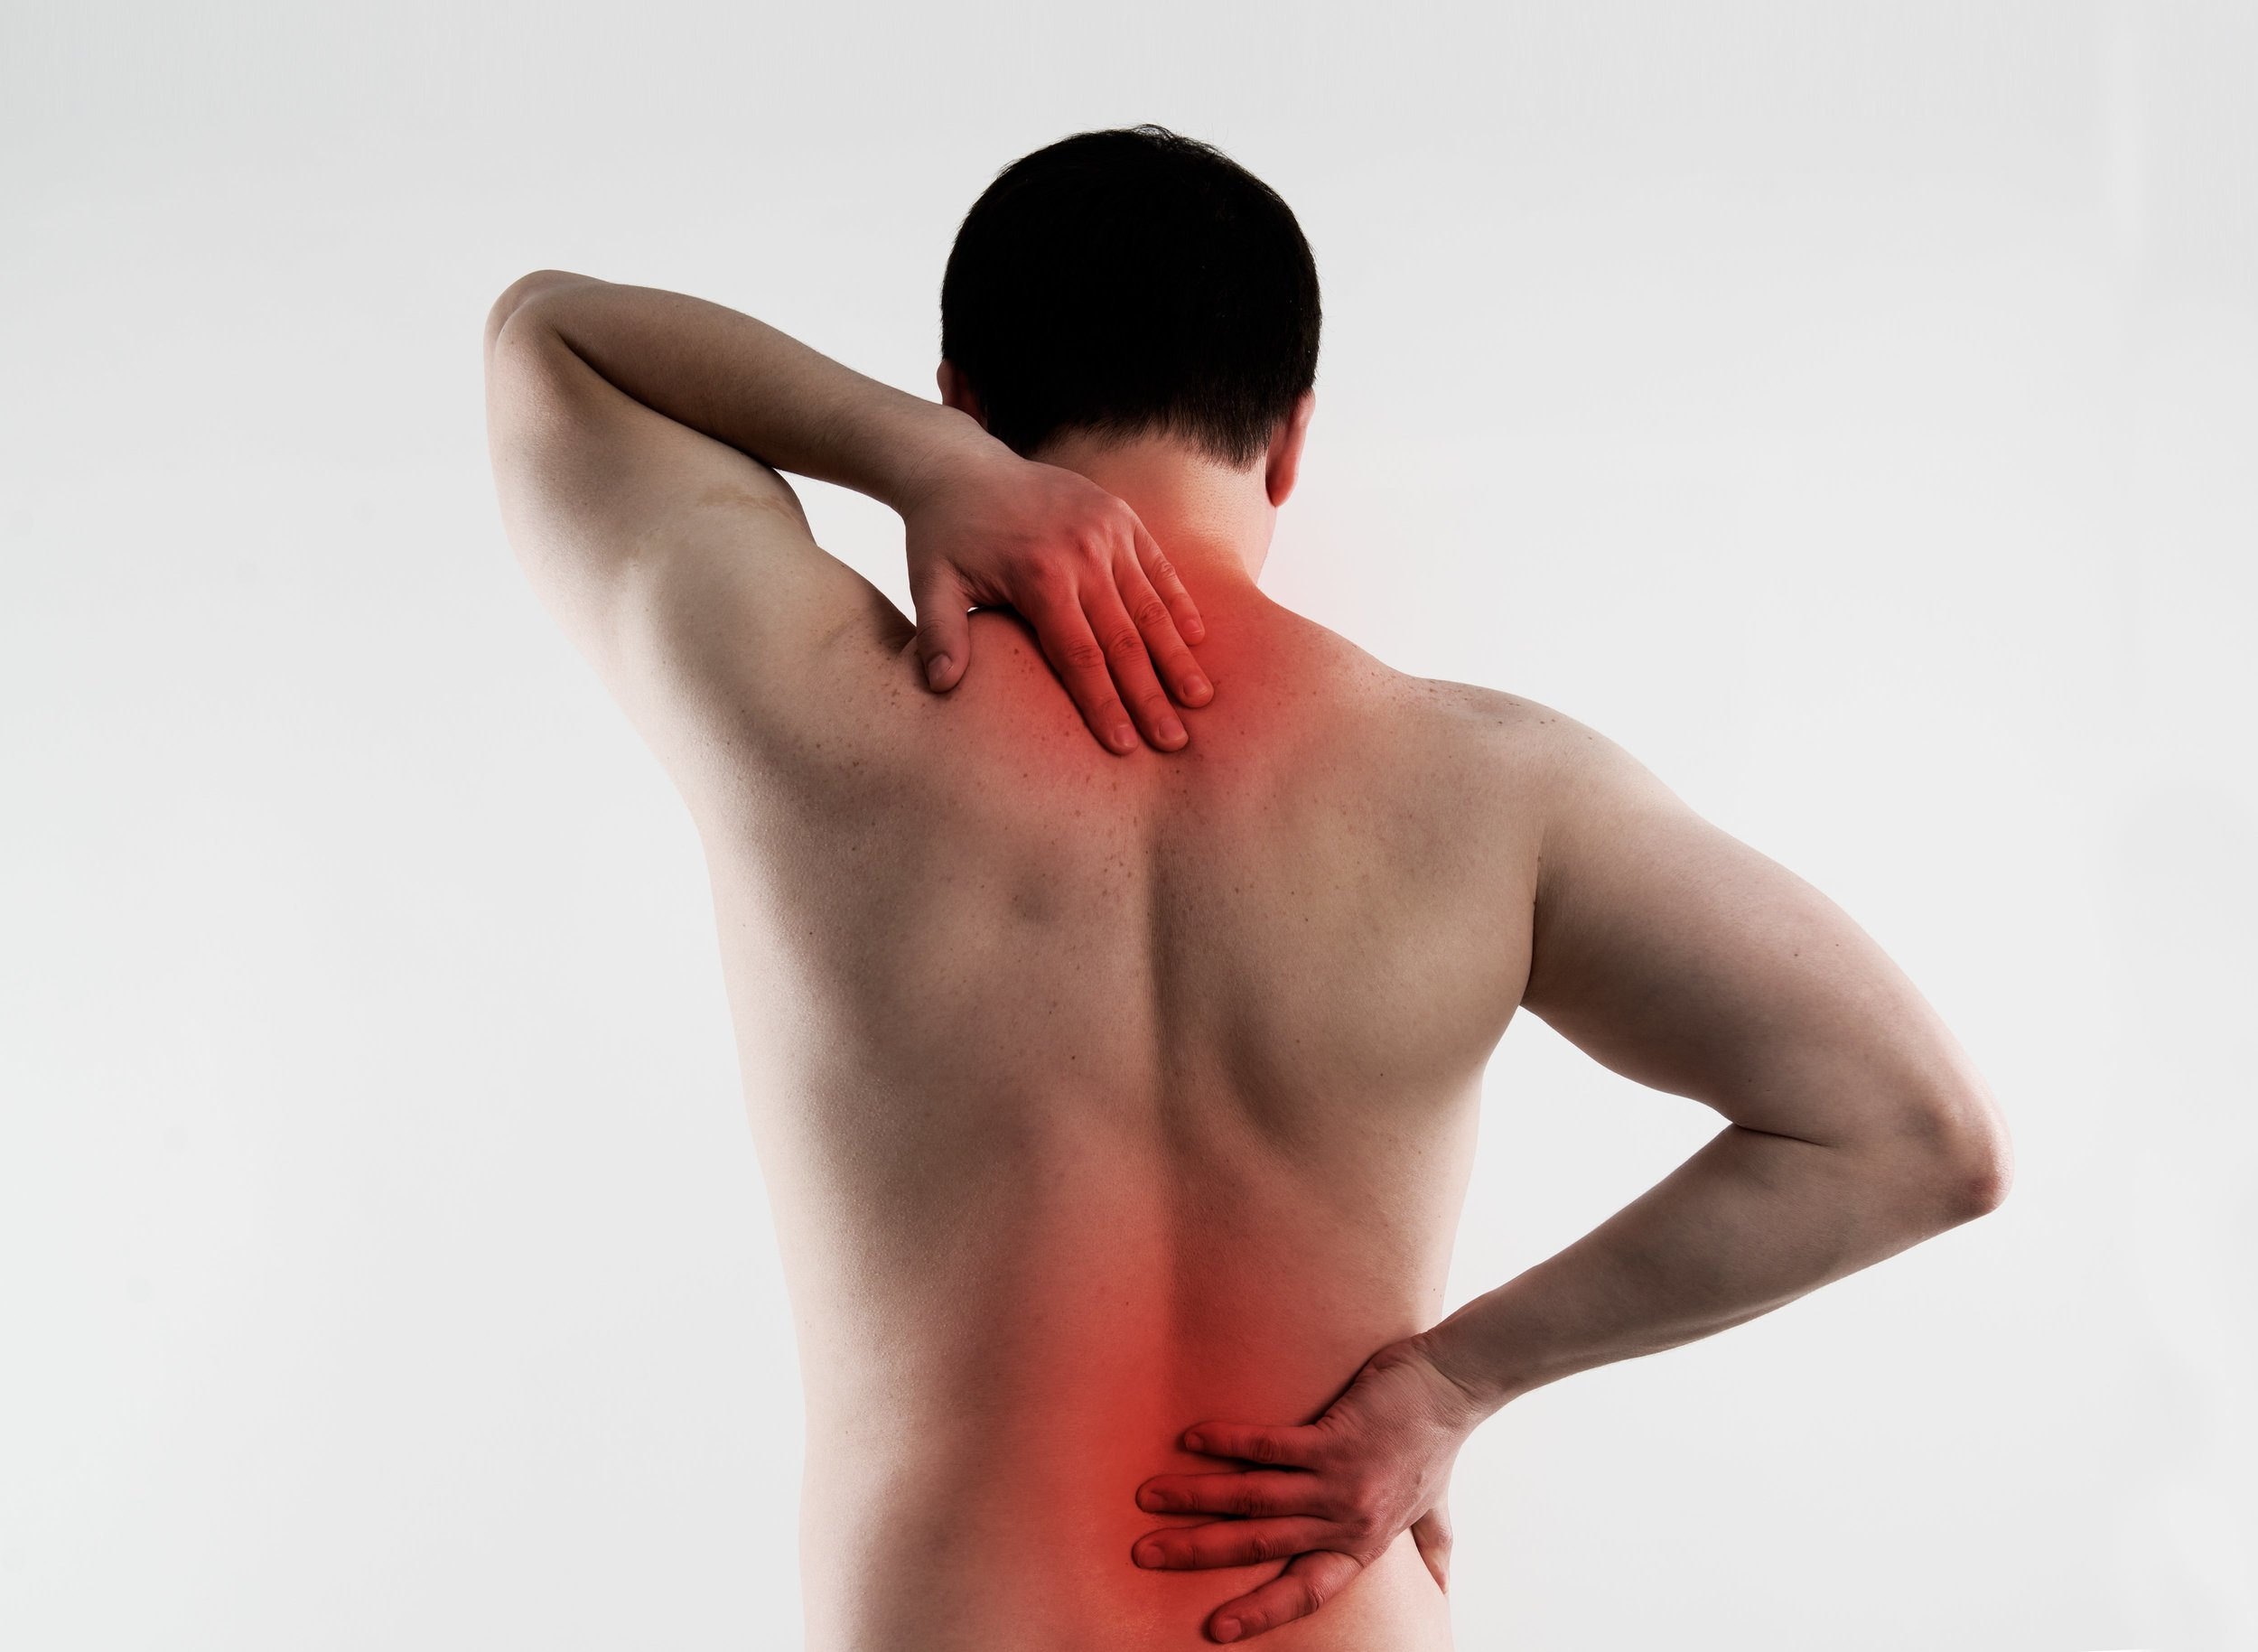 Reduce aches and pains